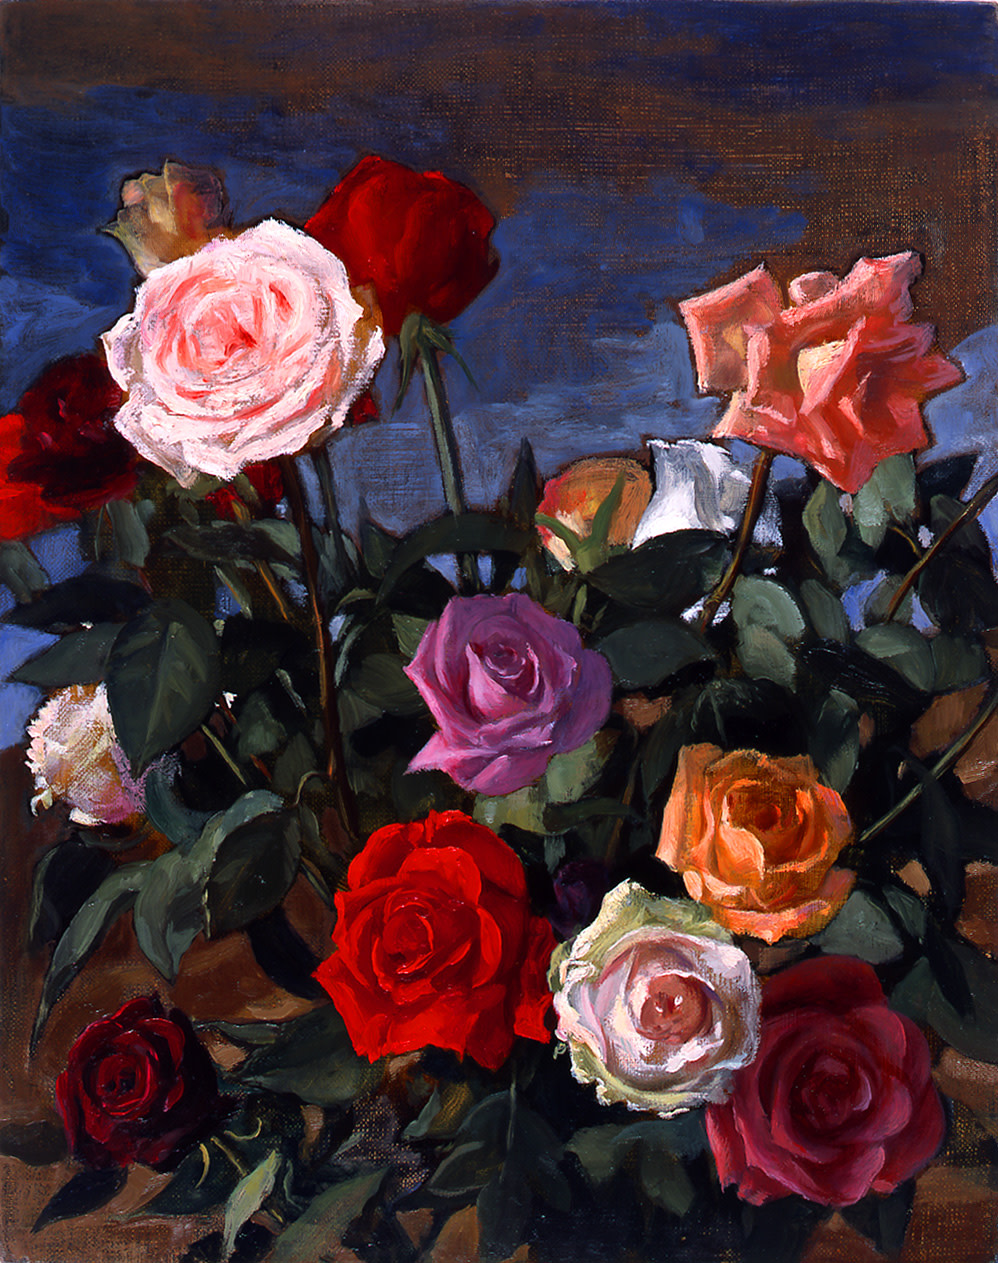 "<div class=""title""><em>Rosebush</em>, 2003</div><div class=""signed_and_dated"">signed and dated</div><div class=""medium"">oil on canvas</div><div class=""dimensions"">61.5 x 52.0 x 2.5 cm<br />24 3/16 x 20 7/16 x 0 15/16 in.</div>"